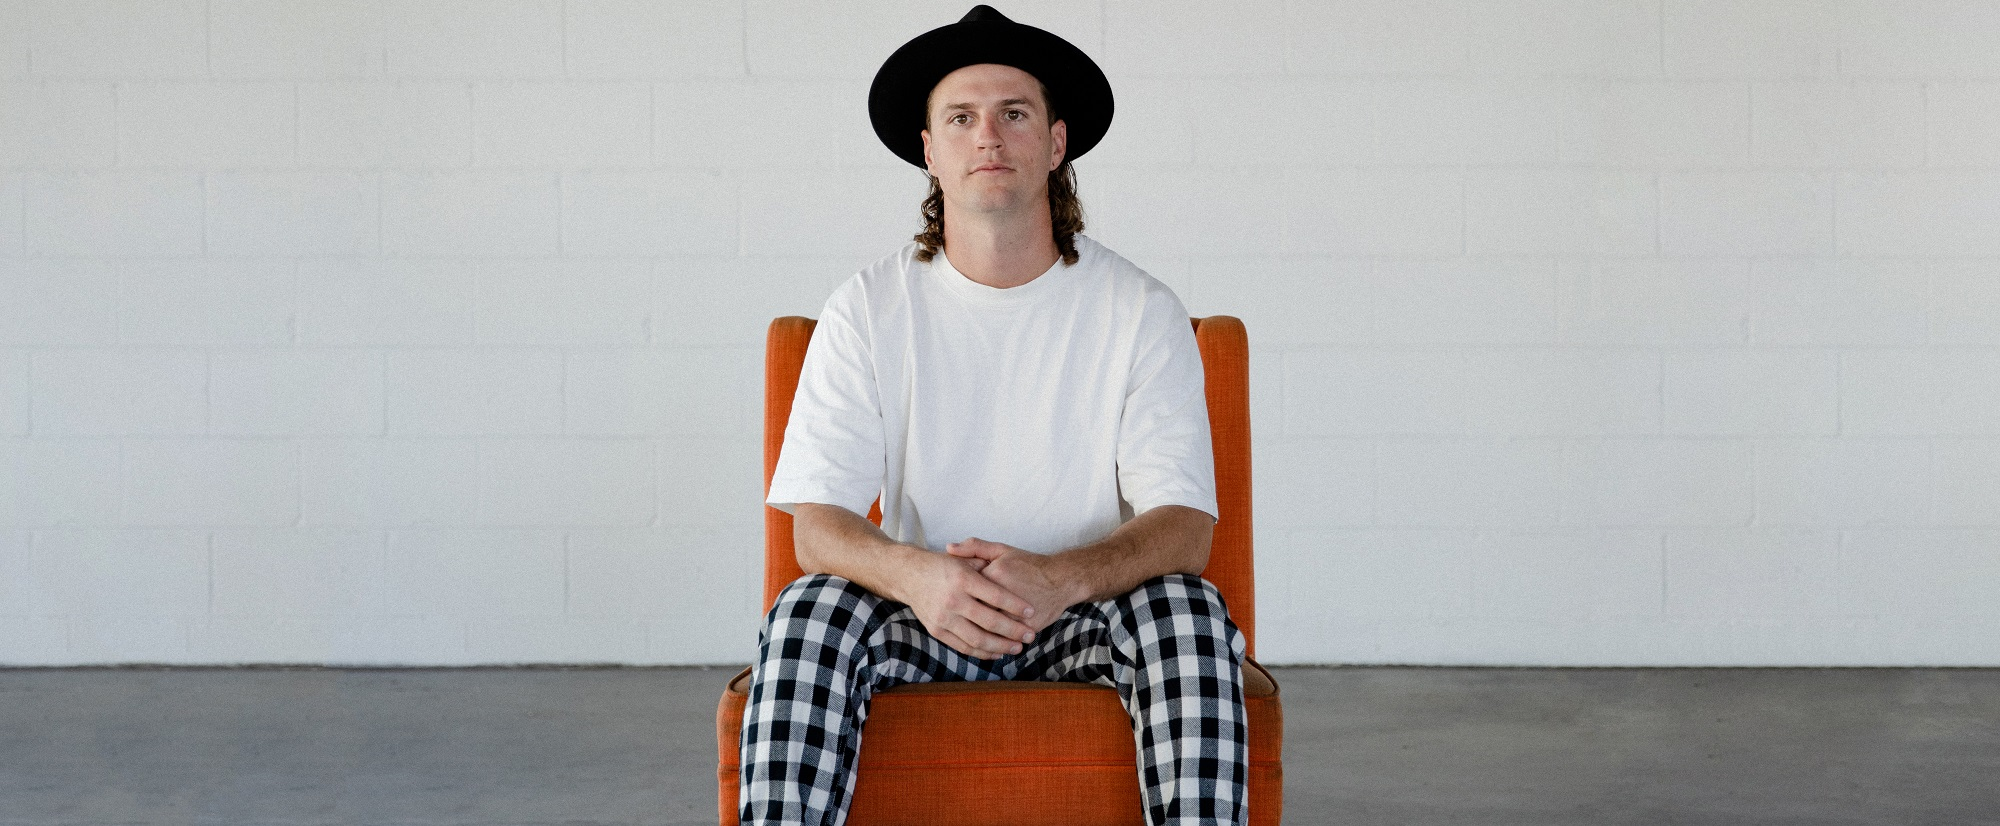 'This Is Art' founder Gus Irwin